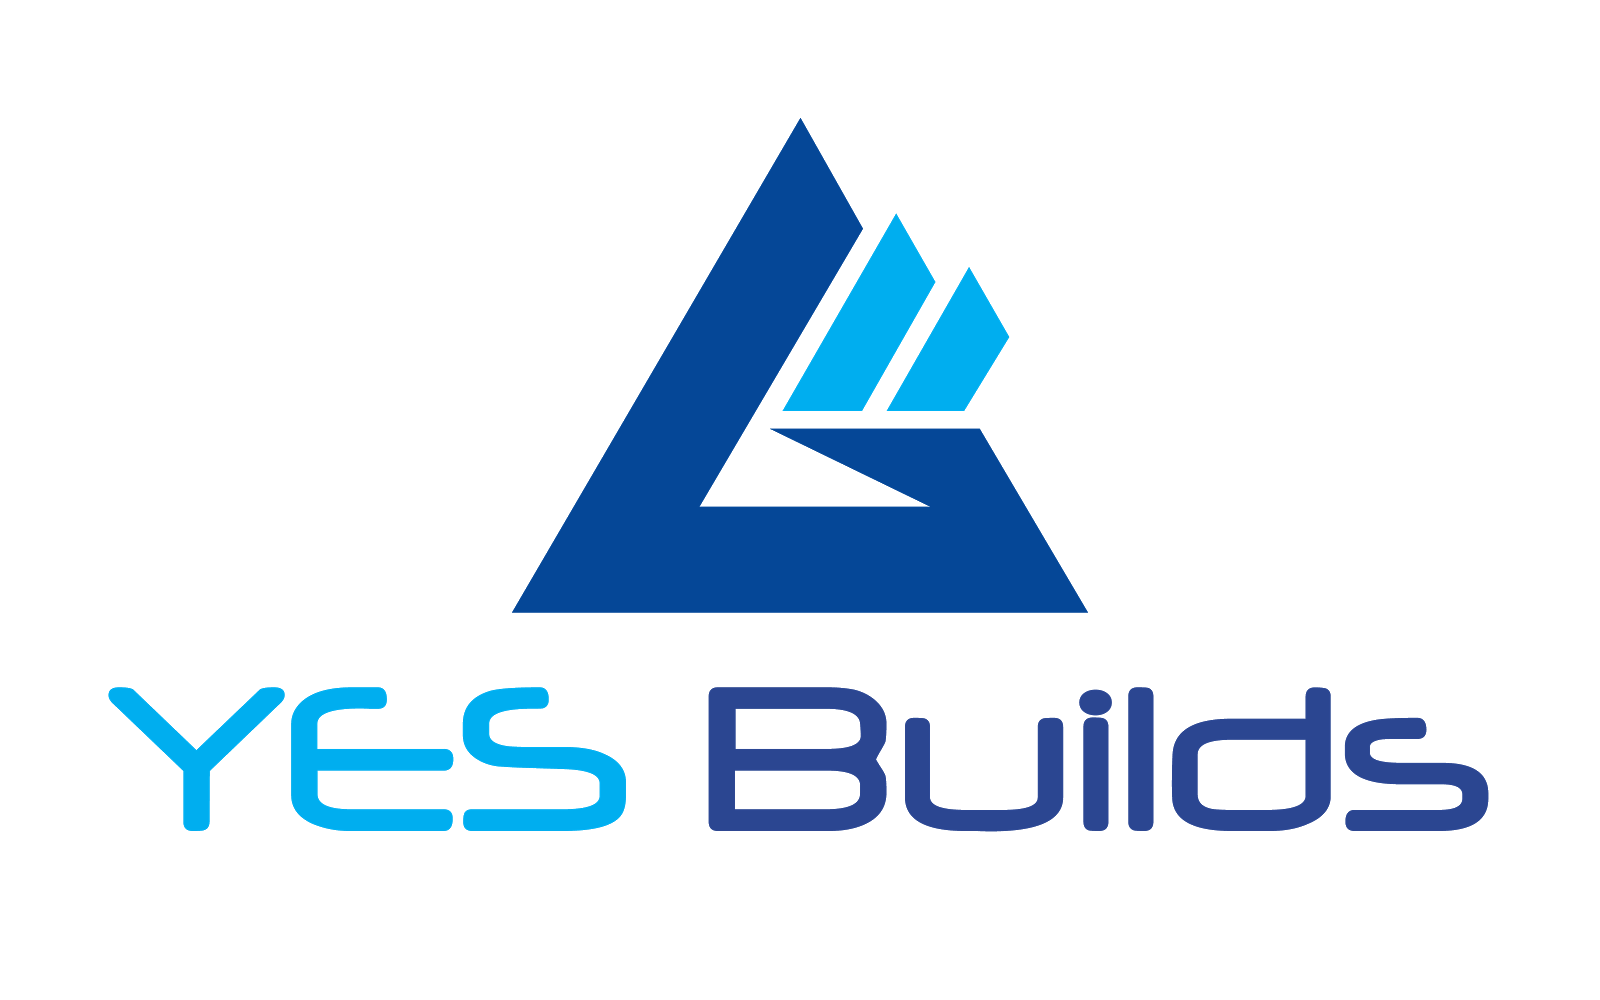 YES Builds